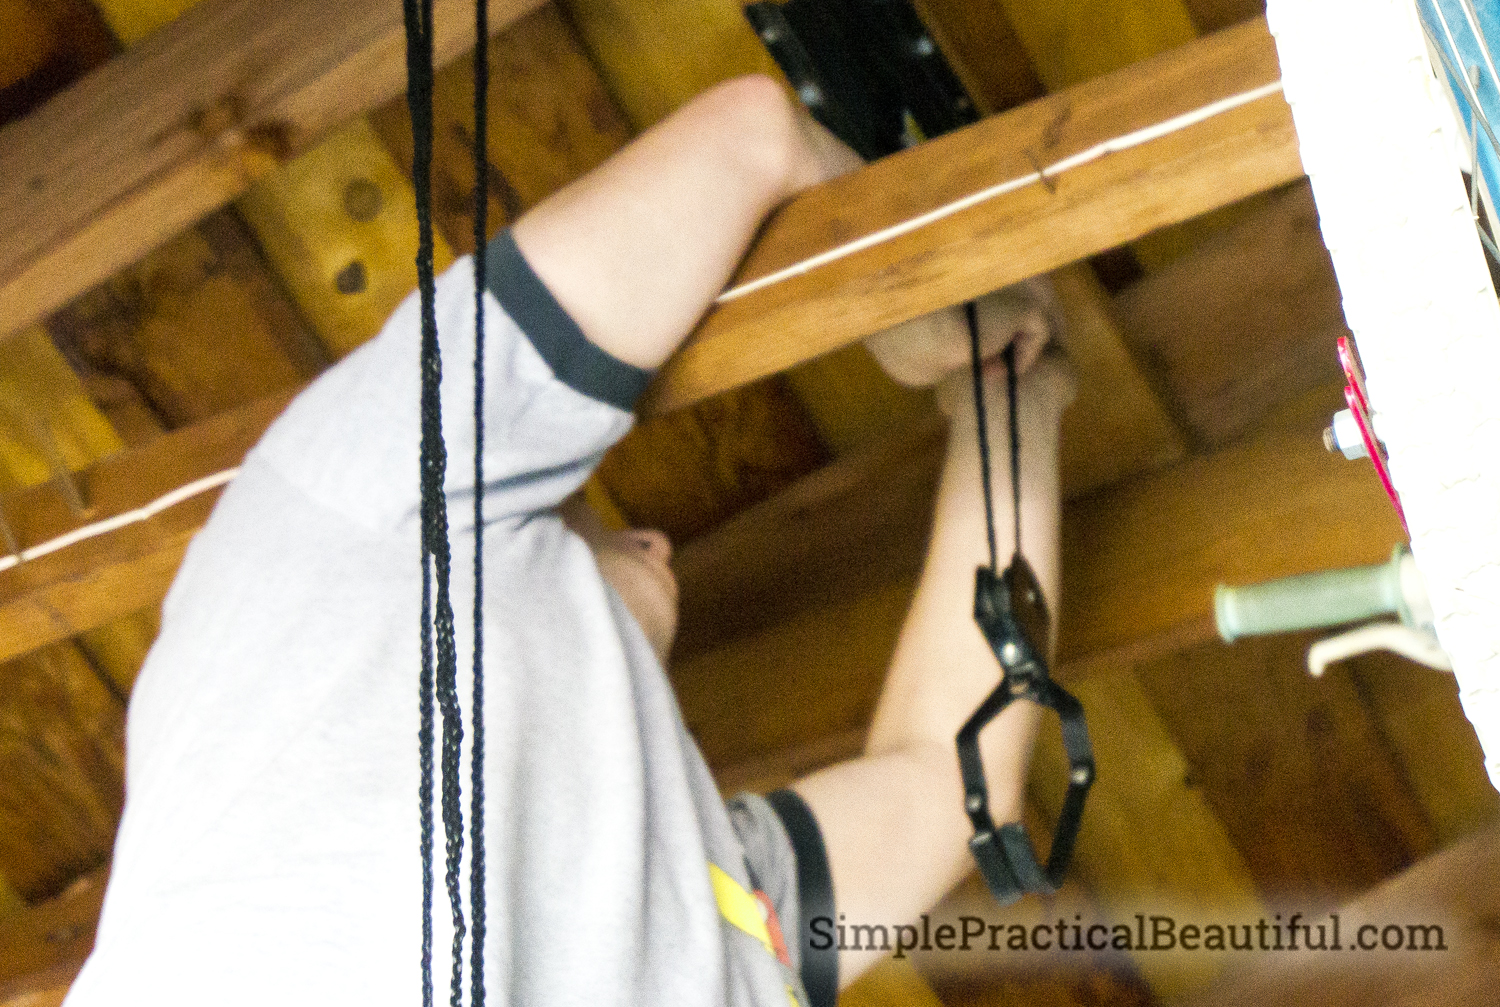 Thread the rope through the pulley and the hook